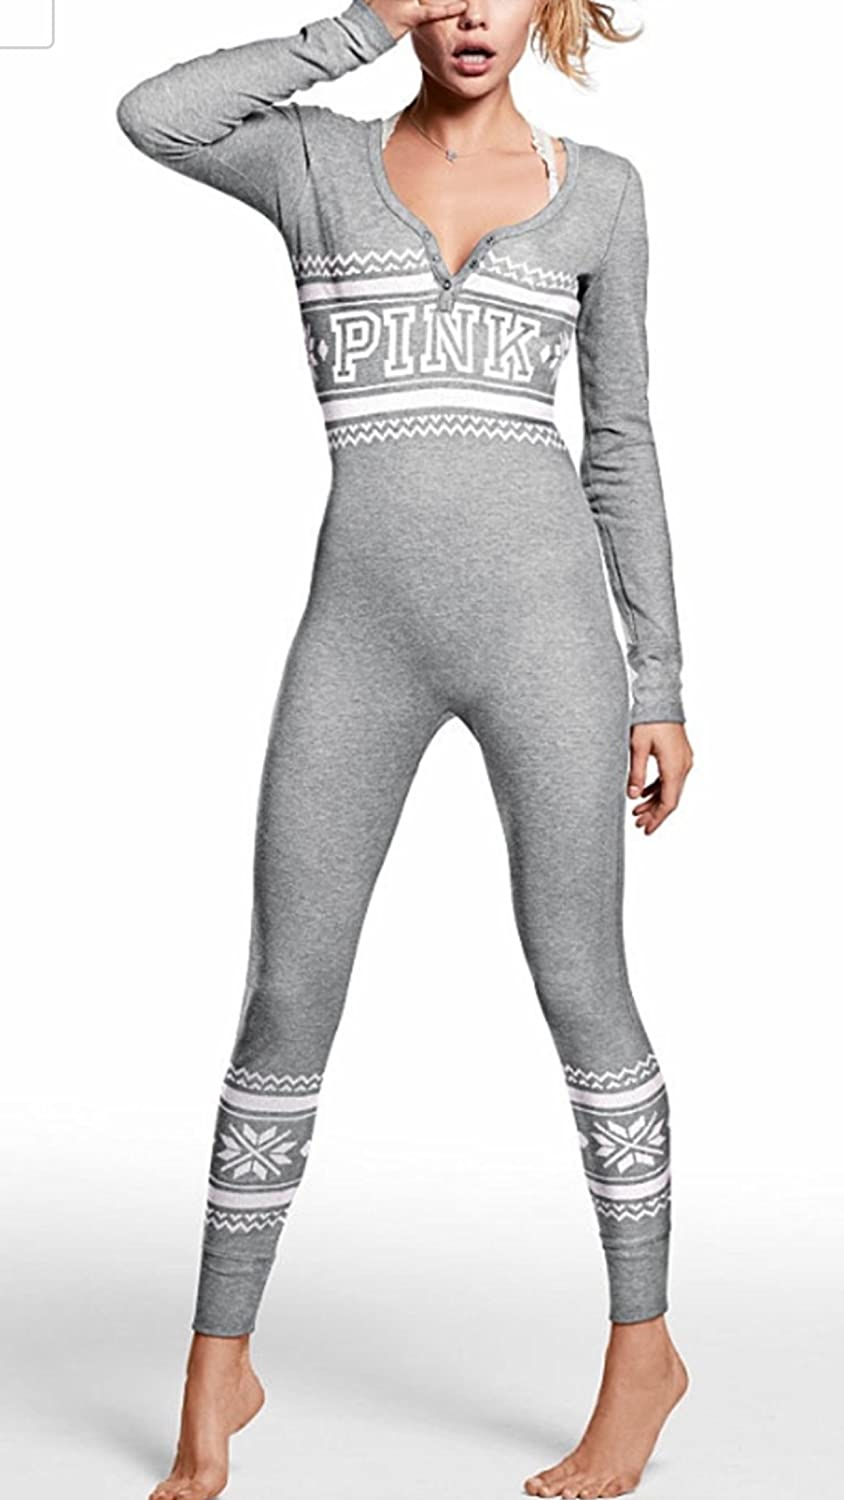 Victoria`s Secret PINK Onesie Pajamas Thermal Long Jane Heather Charcoal Small at Amazon Womens Clothing store: